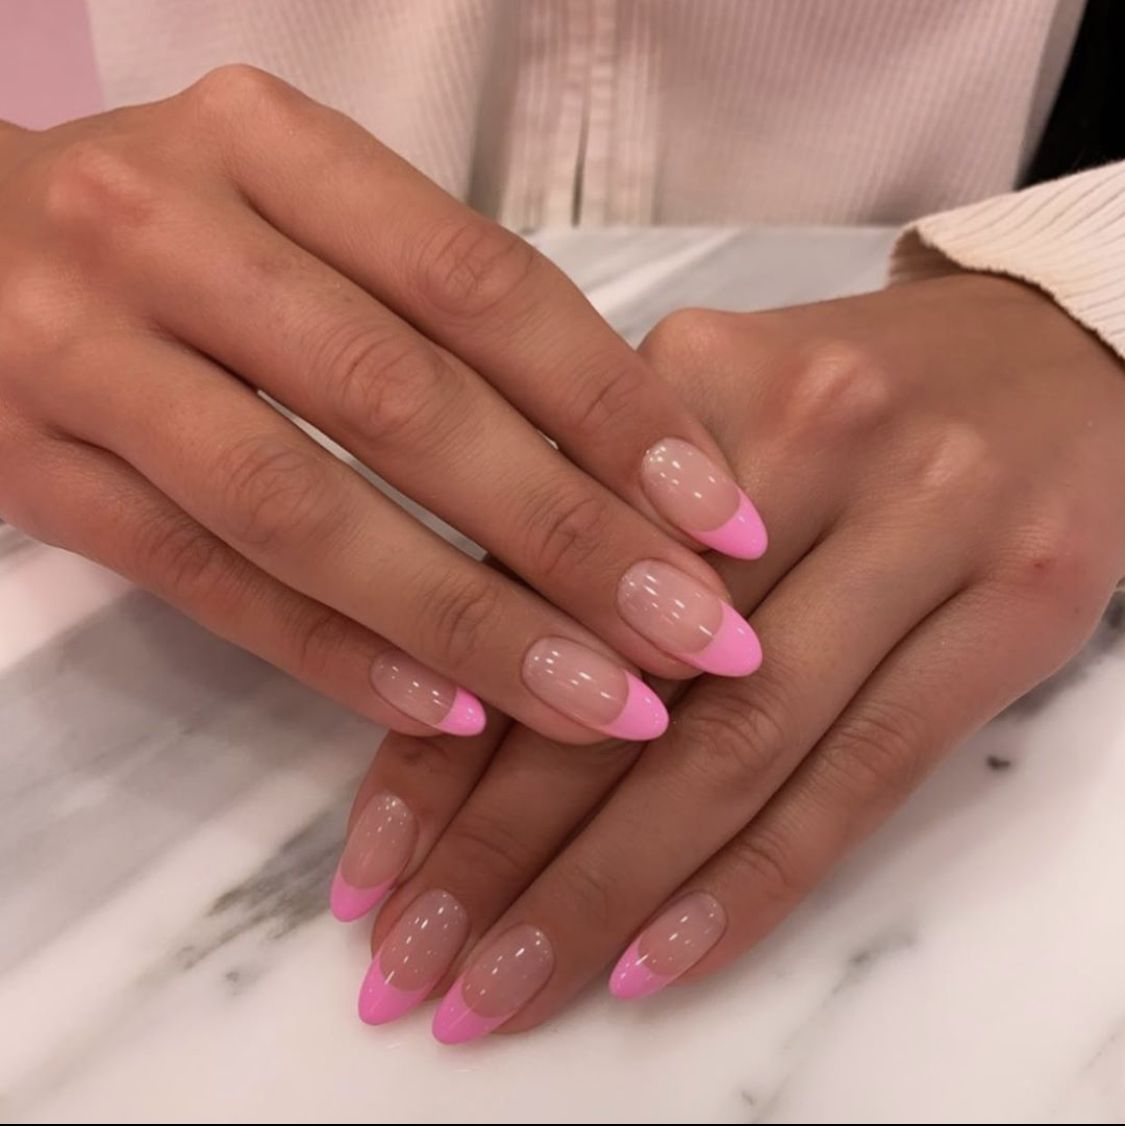 Pin By Richi On N A I L S Pink Tip Nails Minimalist Nails Fire Nails